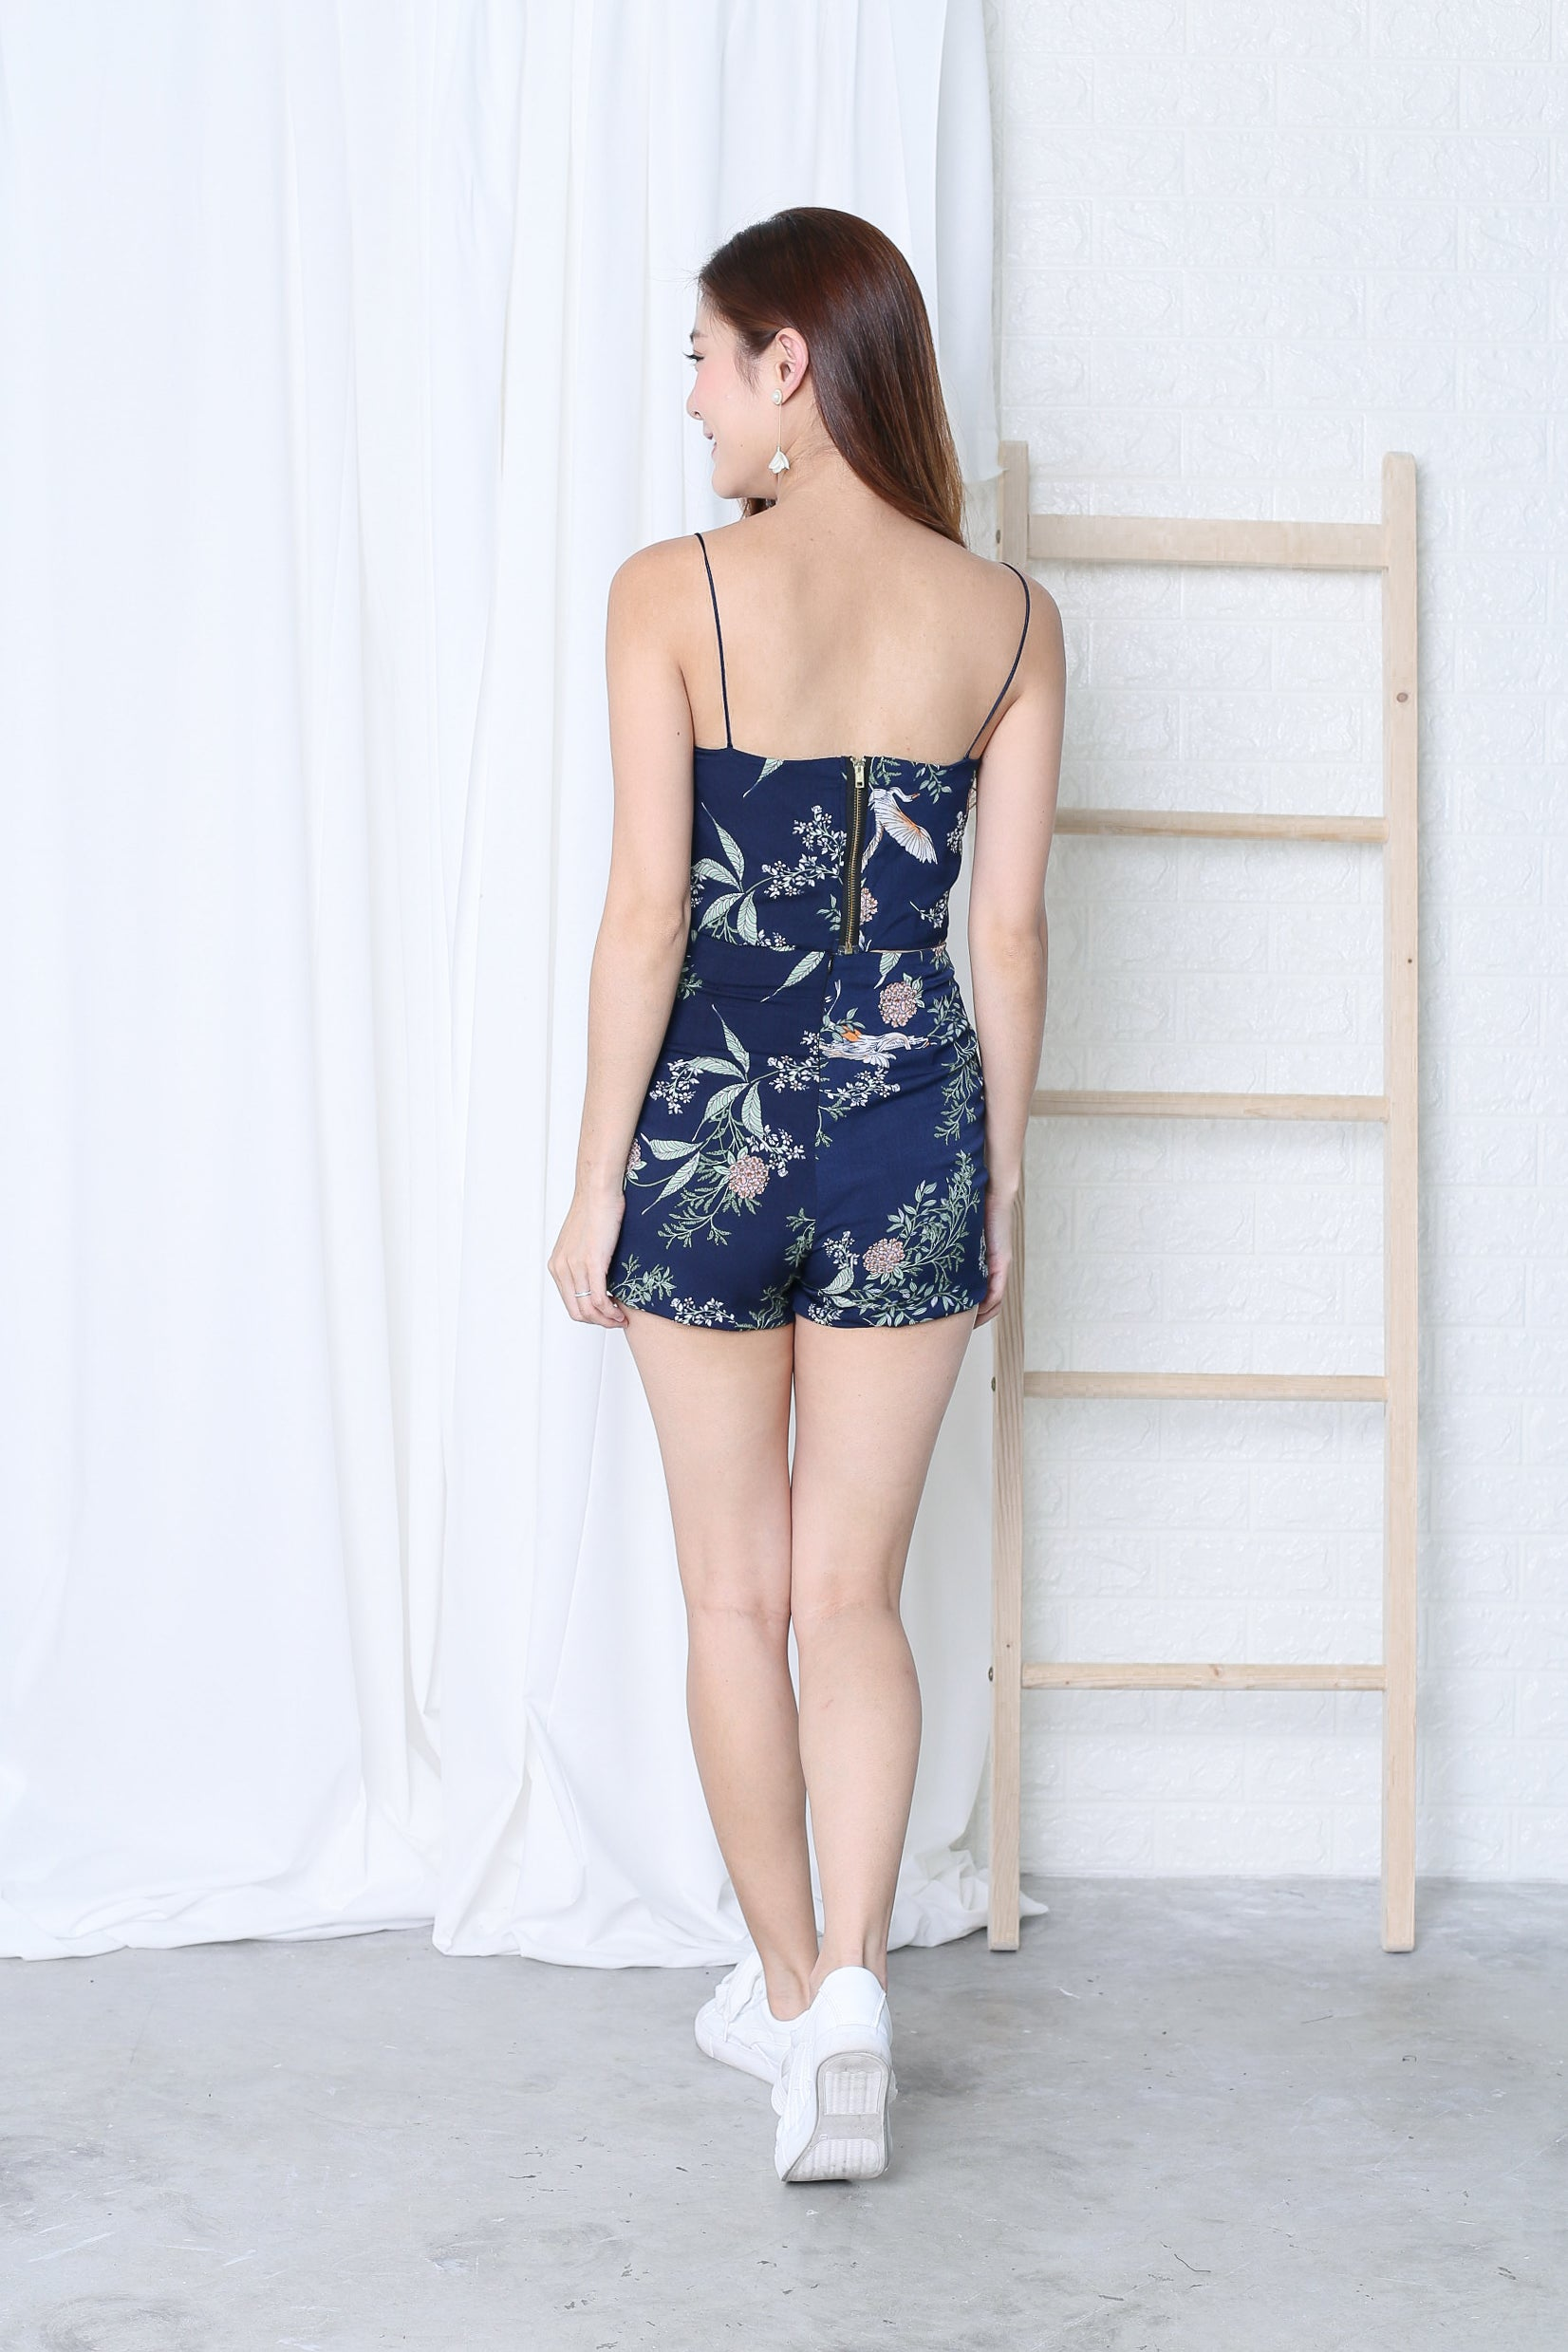 CELEST 2 PC TOP + SKORTS SET IN NAVY